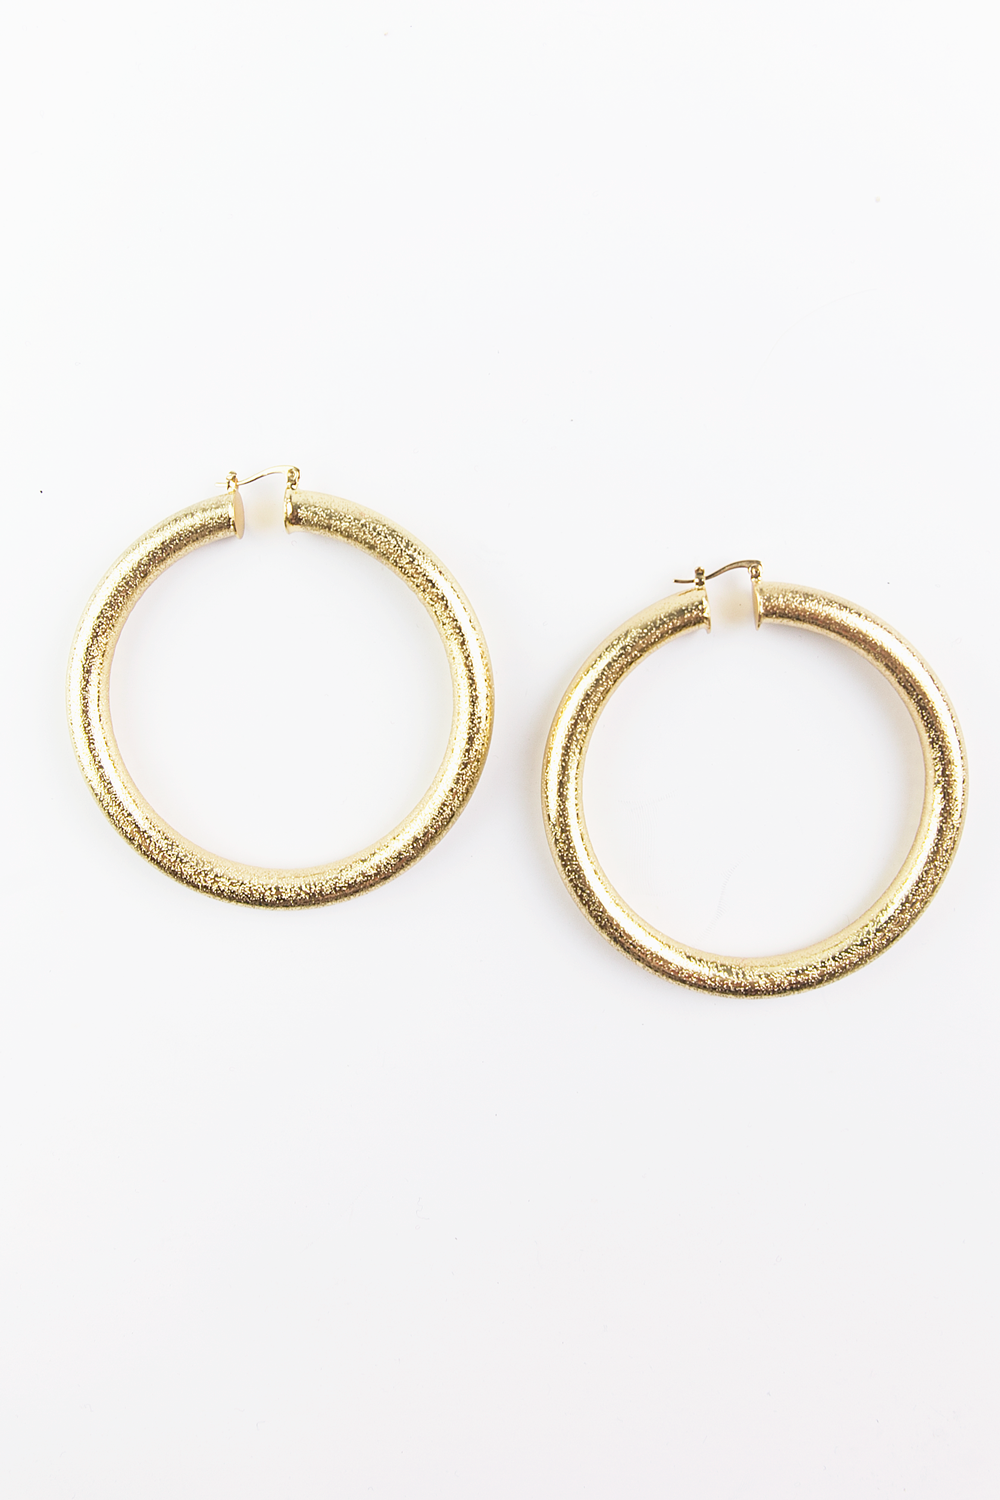 Ready For Your Love Large Hoop Earrings - Haute & Rebellious